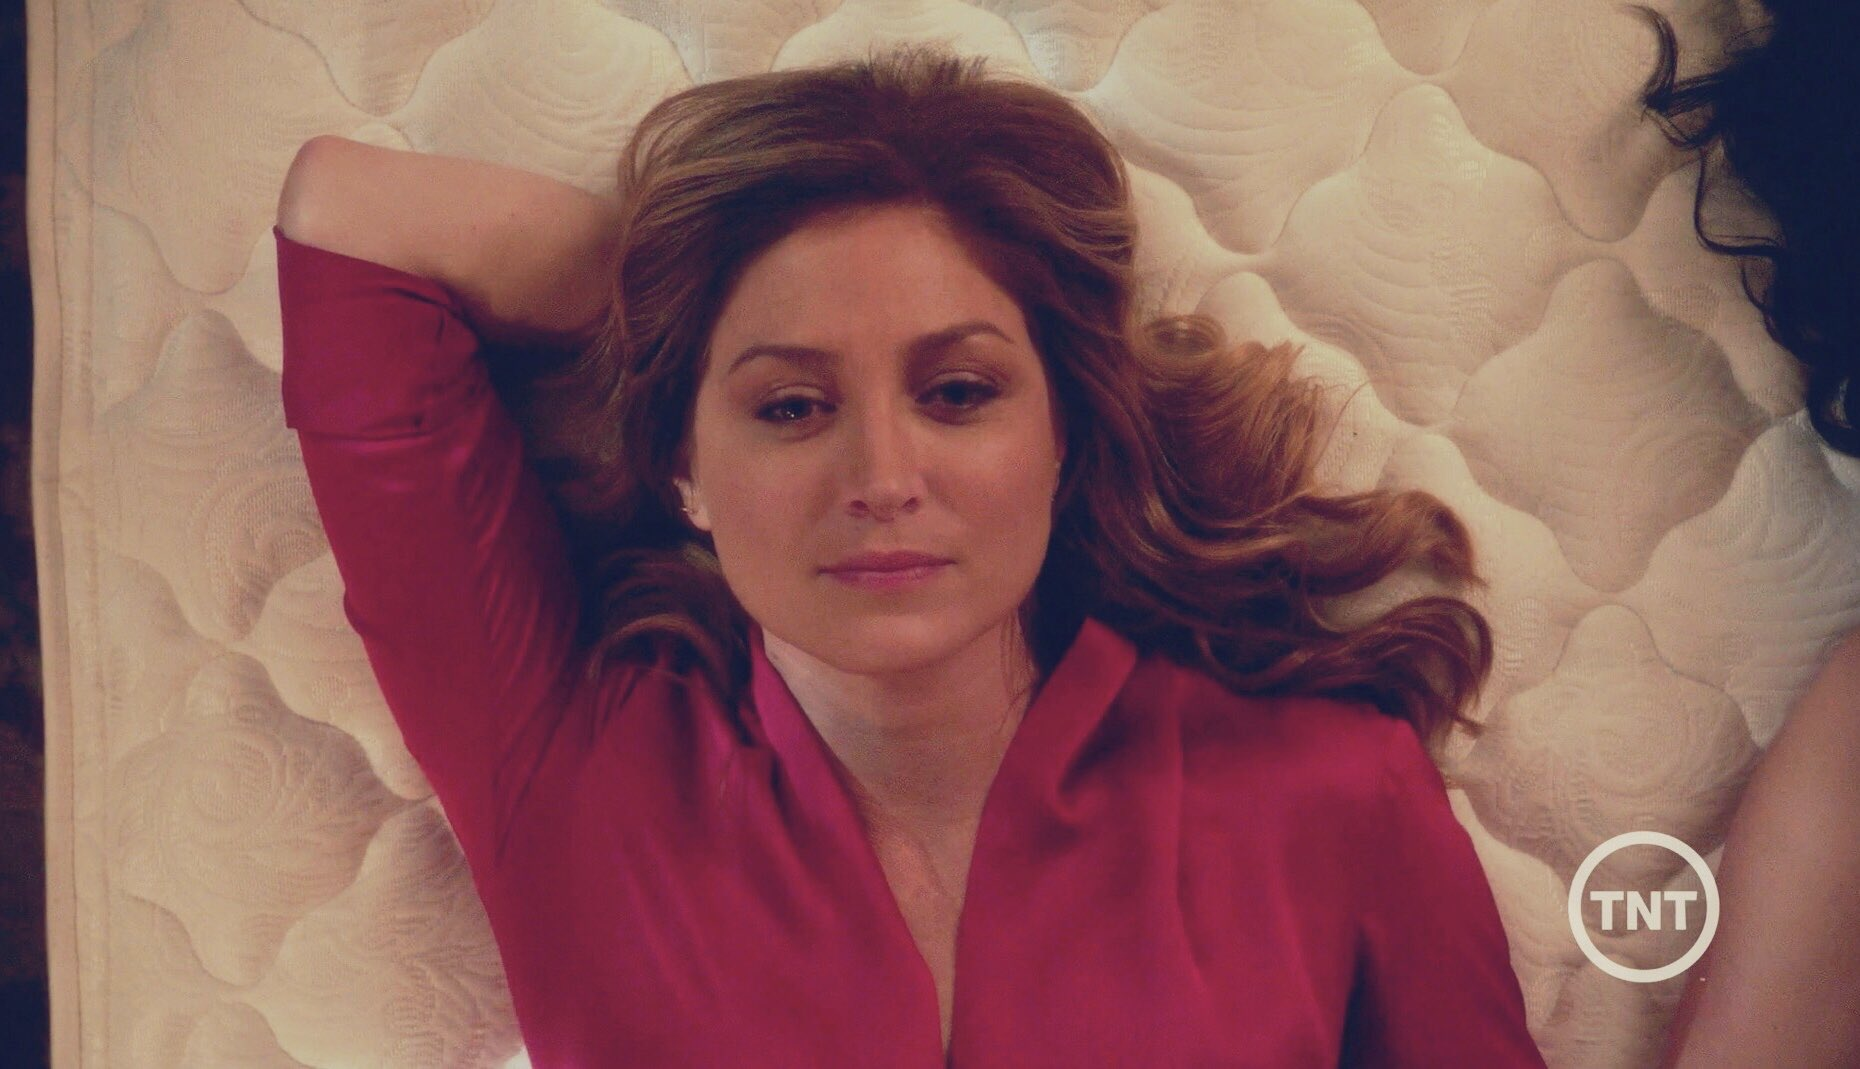 #MauraMonday  Who else had trouble getting out of bed this morning? ����♀️ https://t.co/IrtSIjZeGN